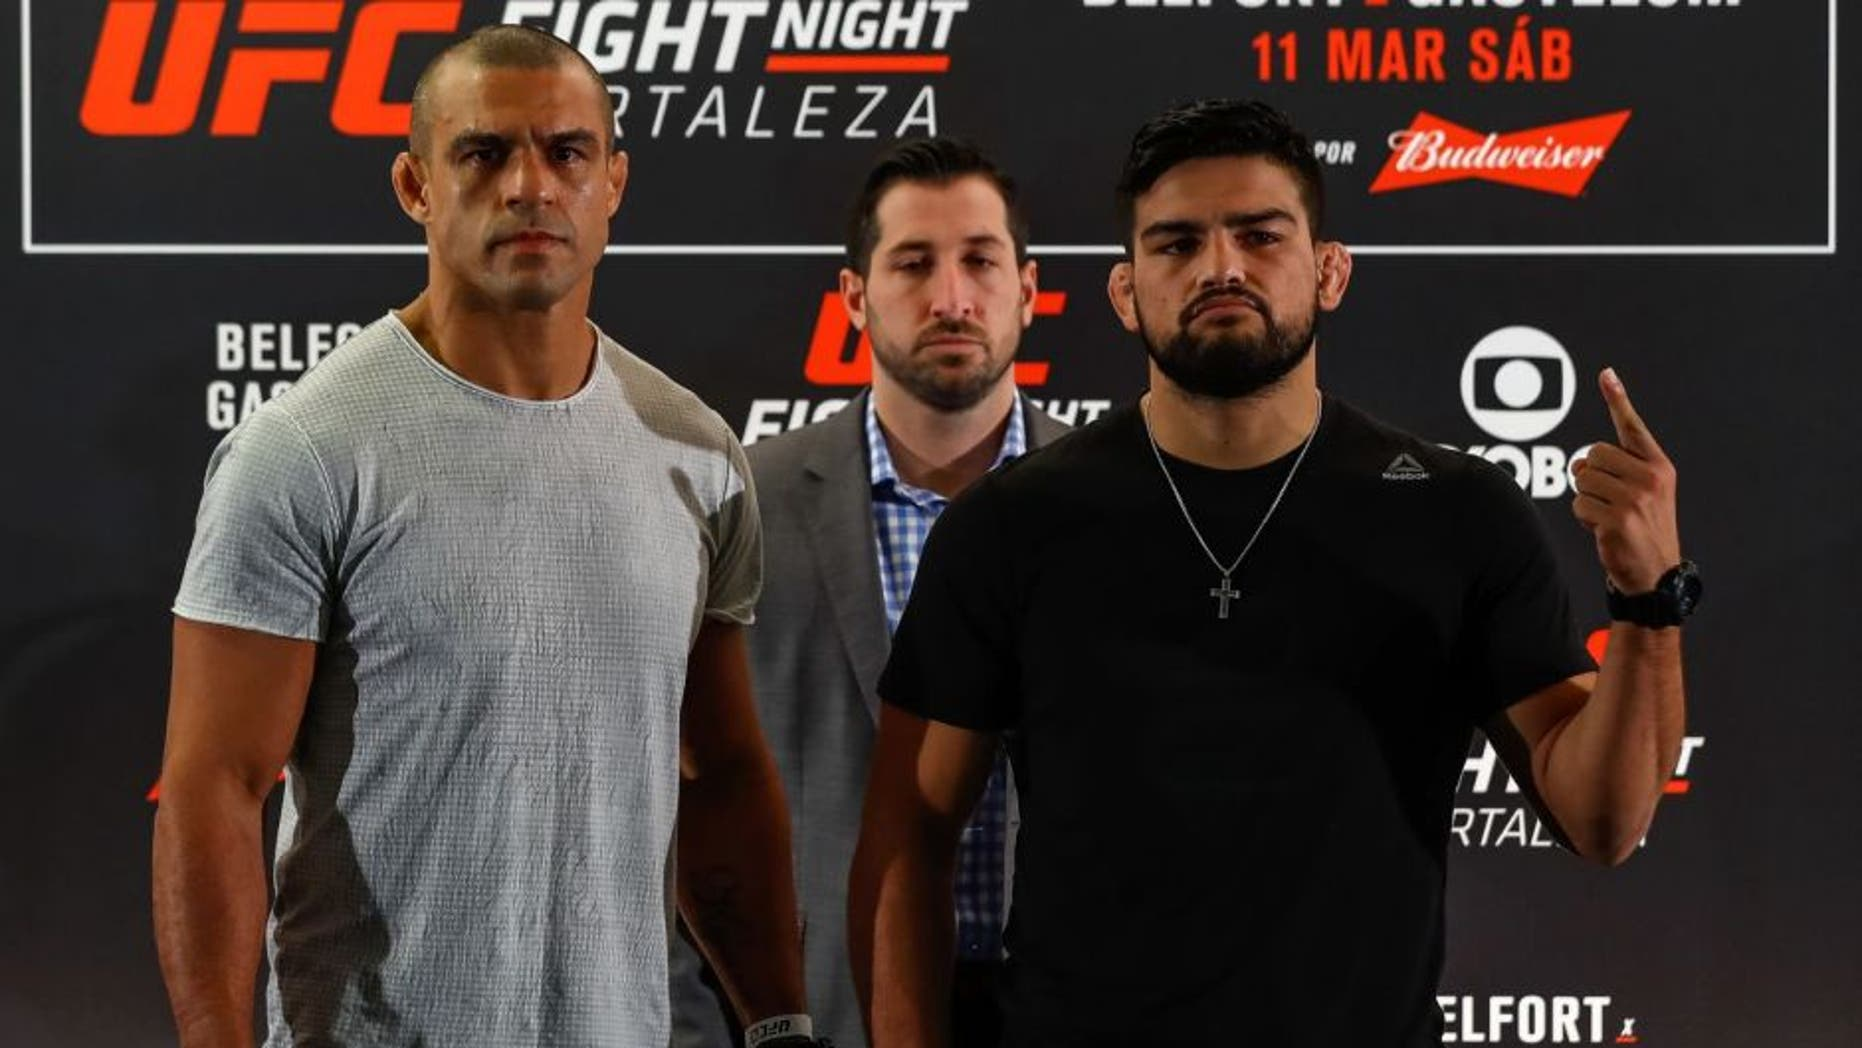 FORTALEZA, BRAZIL - MARCH 09: Middleweight fighters Vitor Belfort (L) of Brazil and Kelvin Gastelum of the United States pose for photographers during Ultimate Media Day at Gran Marquise Hotel on March 09, 2017 in Fortaleza, Brazil. (Photo by Buda Mendes/Zuffa LLC/Zuffa LLC via Getty Images)